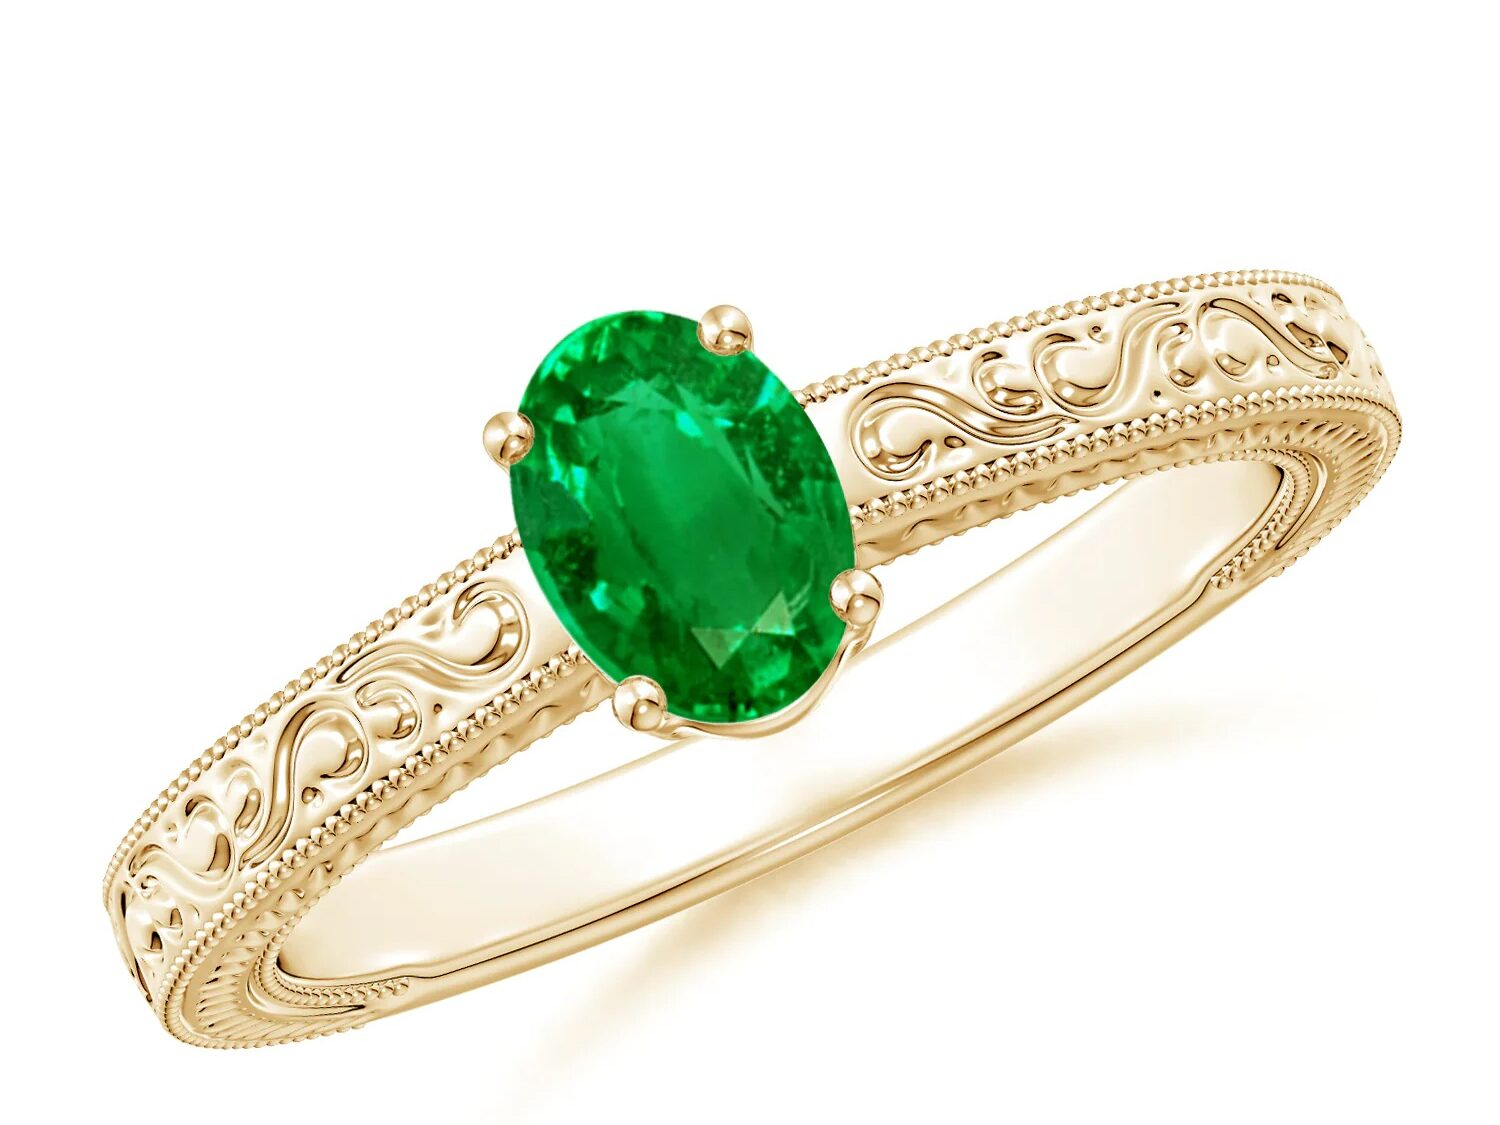 vintage inspired oval emerald engagement ring with delicate gold engraving details on the band